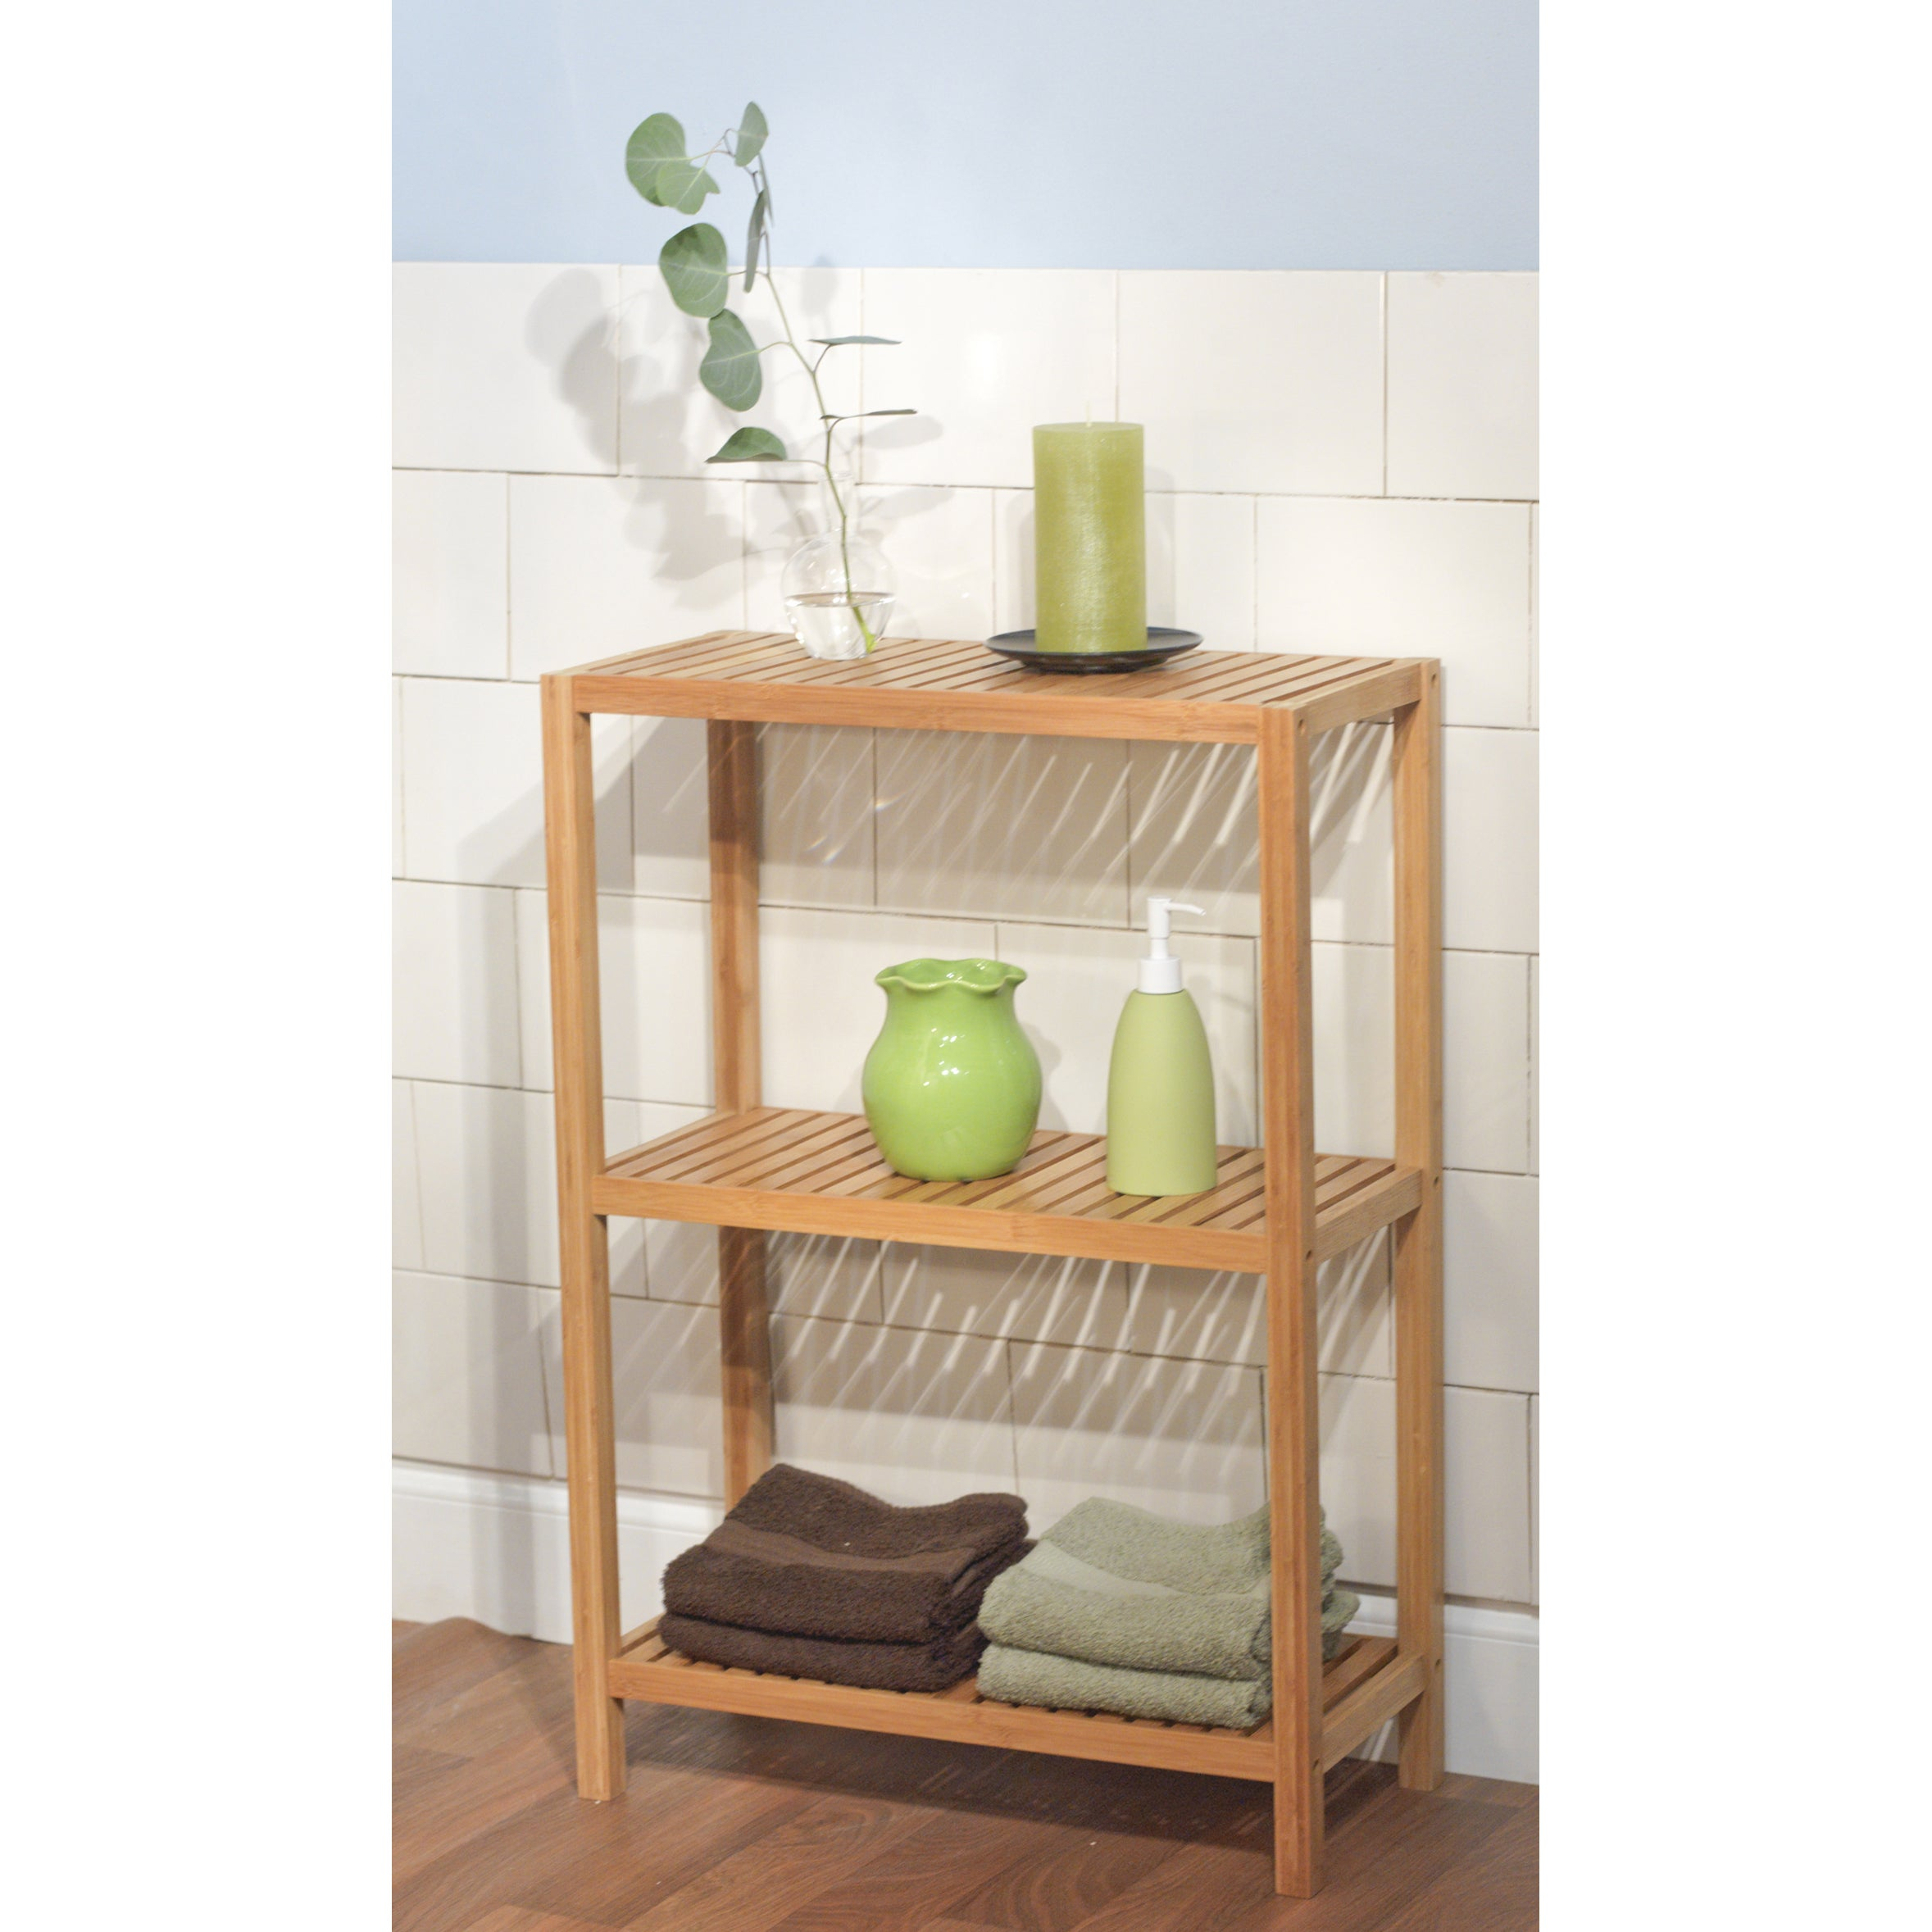 Innovative Home Home Bathroom Bathroom Storage 4 Tier Bathroom Storage